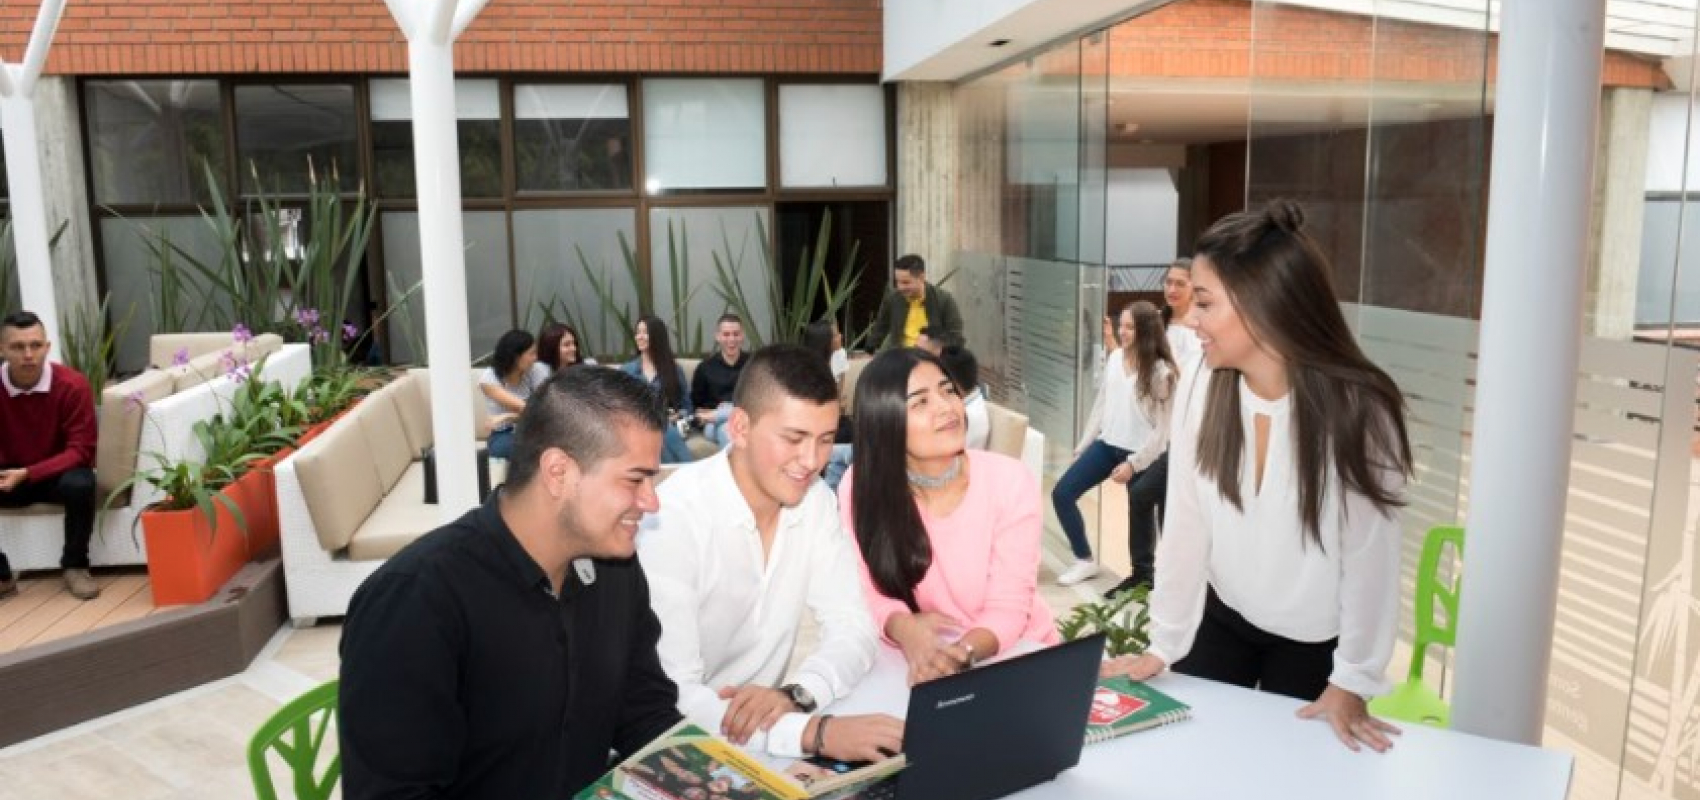 Students in Colombia gather around a table